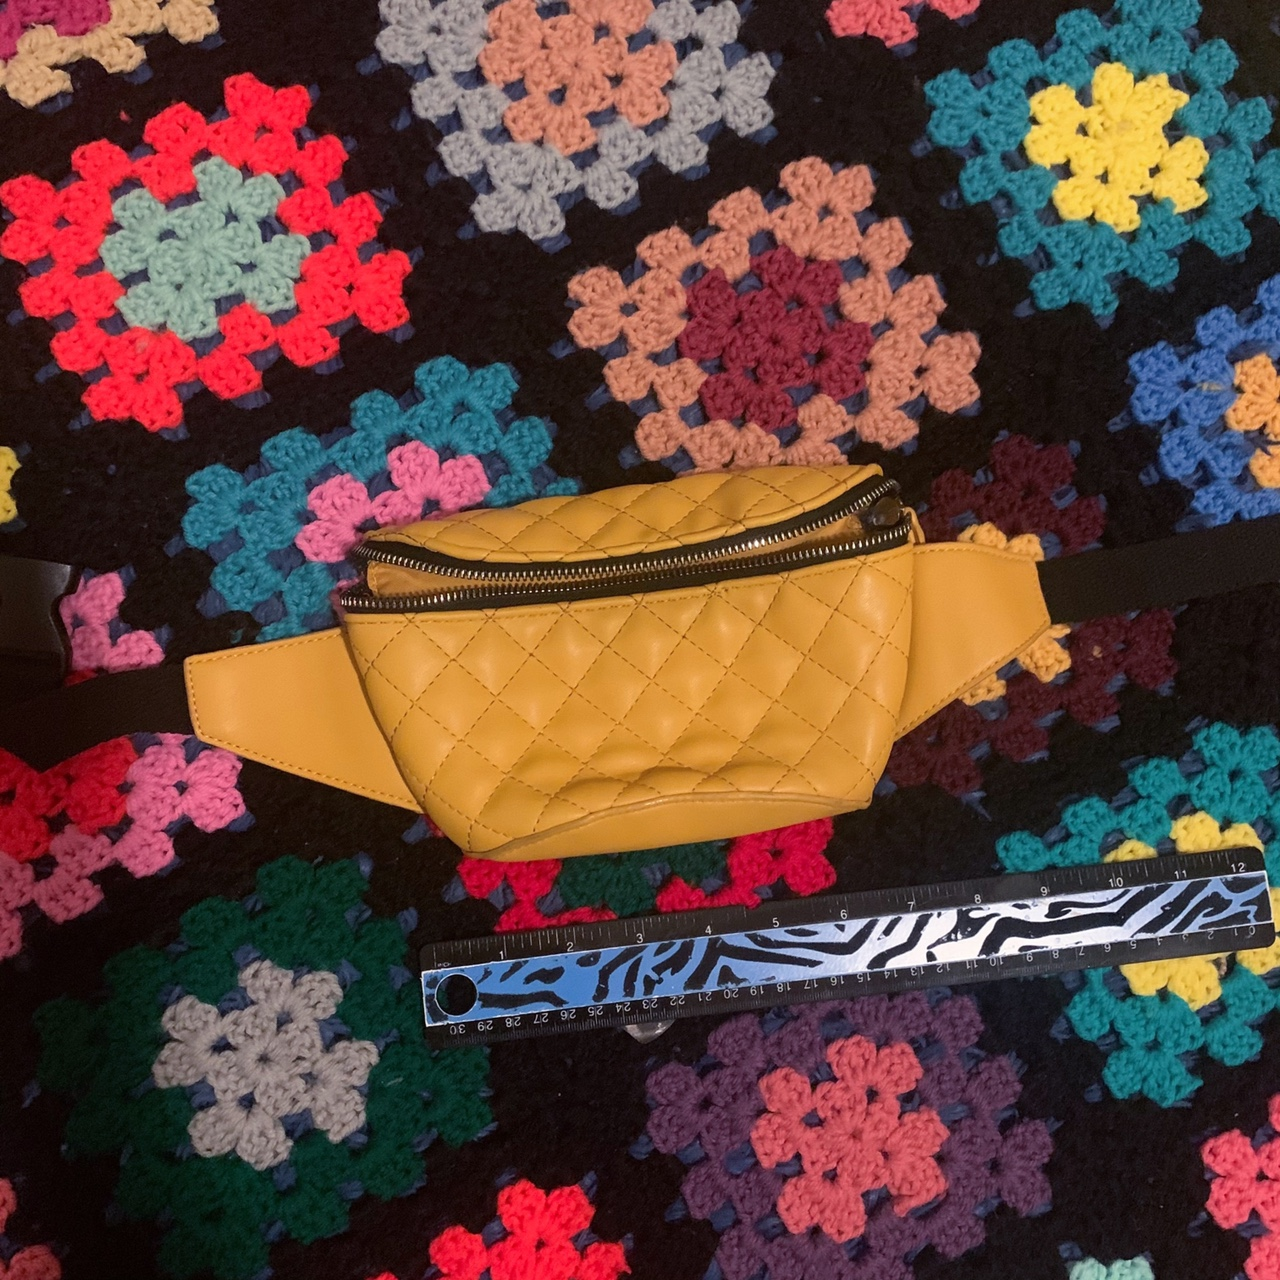 Product Image 1 - brand: idk traits: yellow style quilted